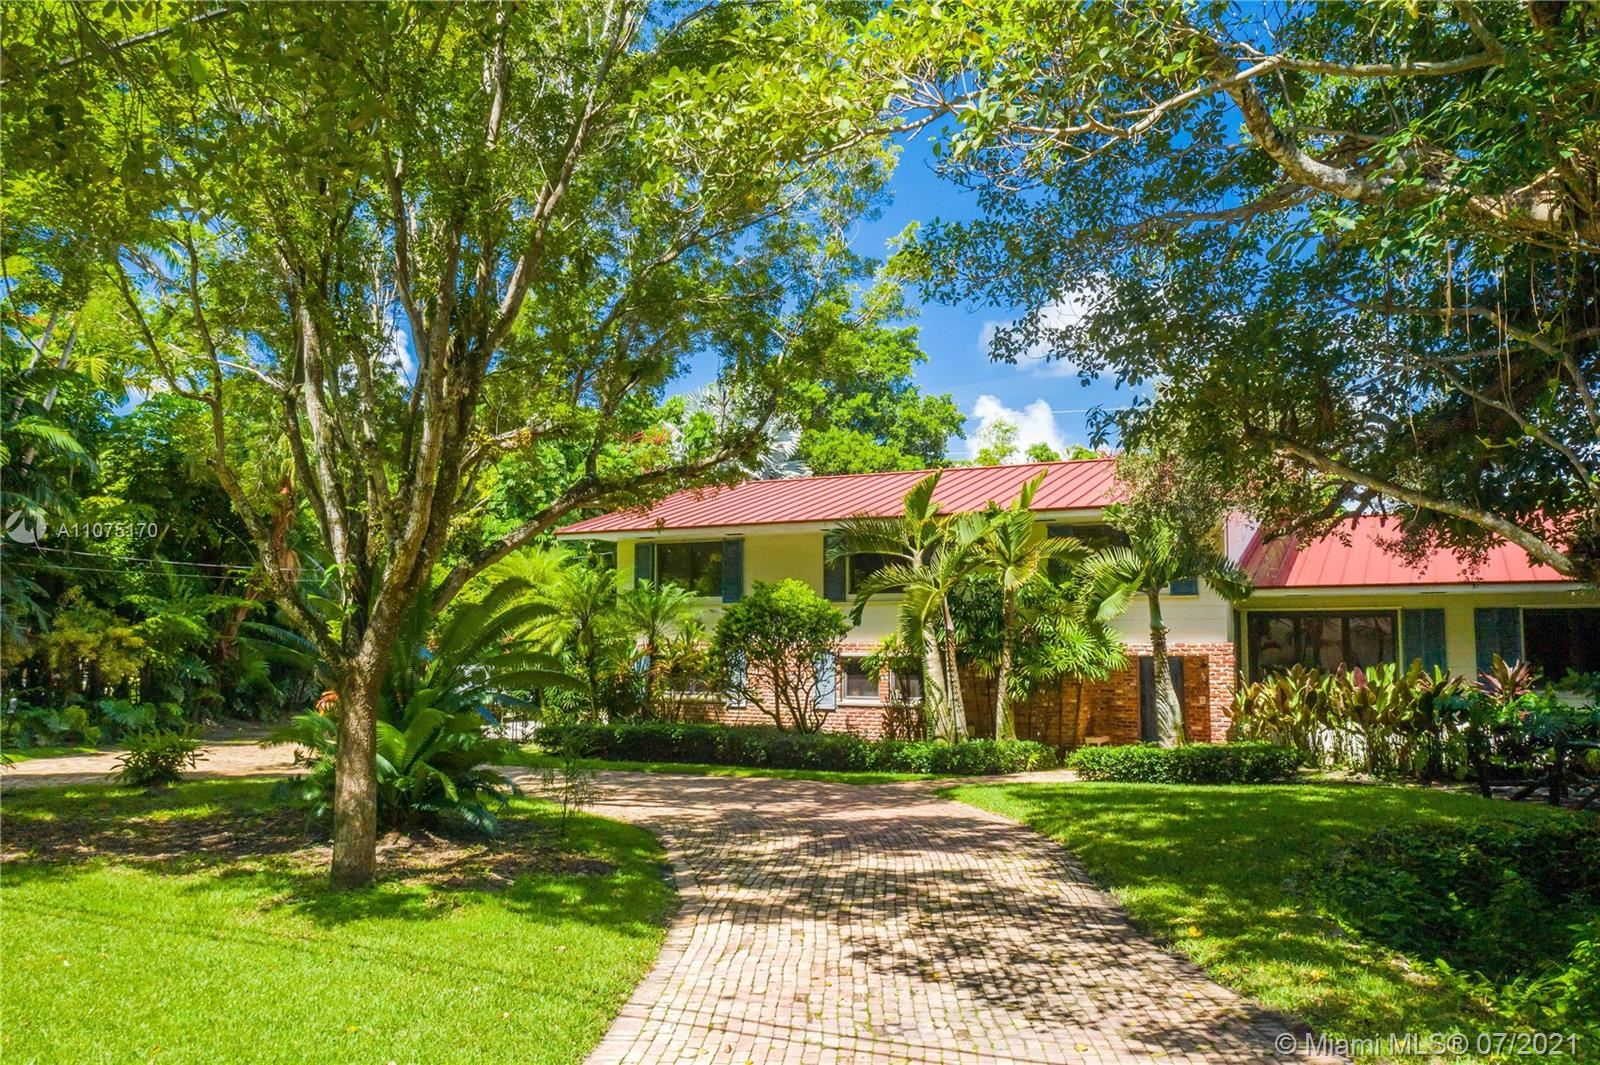 13400 SW 66th Ave, Pinecrest, FL 33156 - #: A11075170